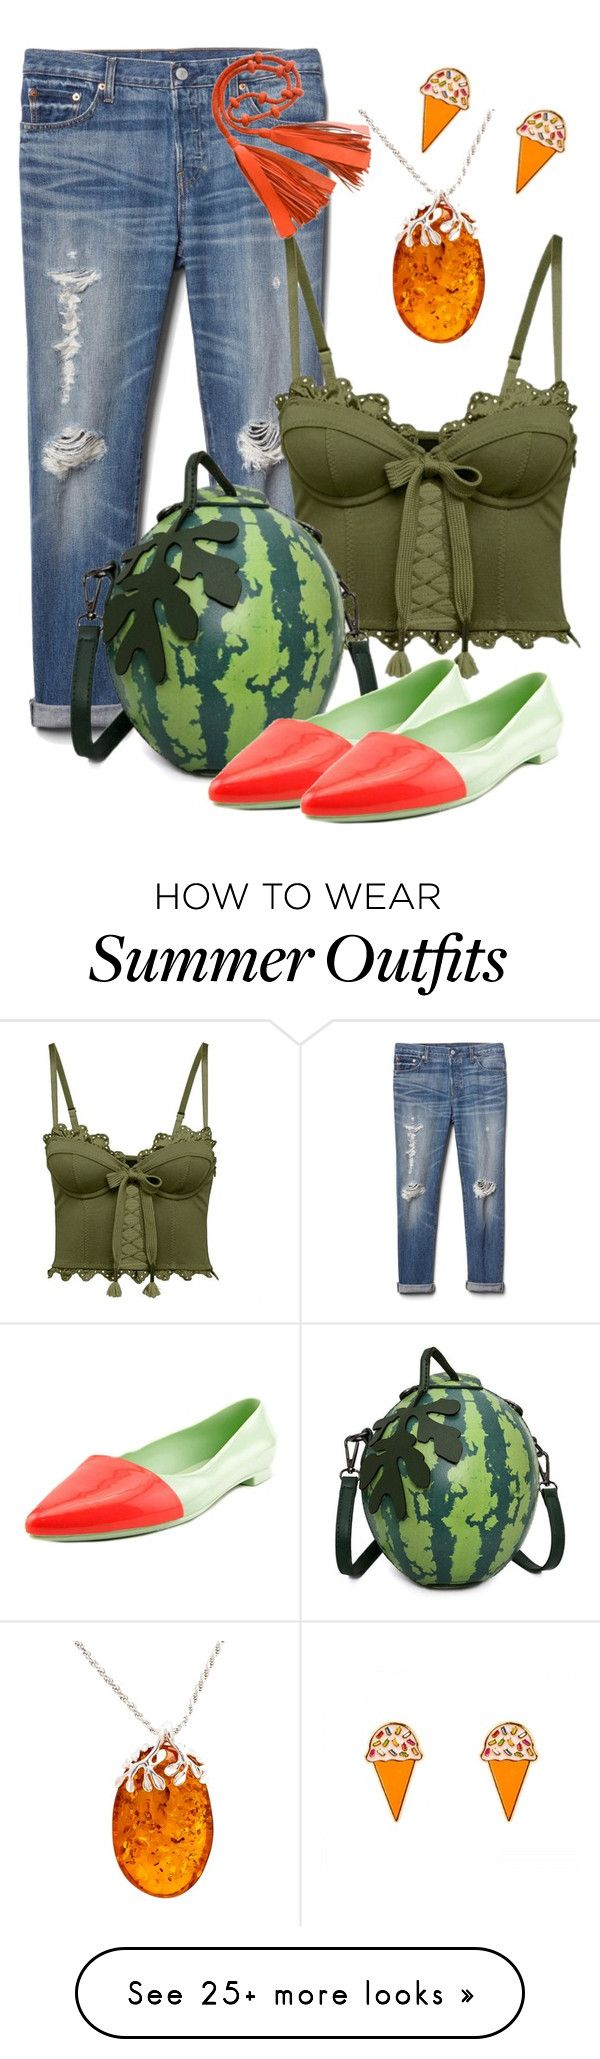 6531a704738 Summer Outfits